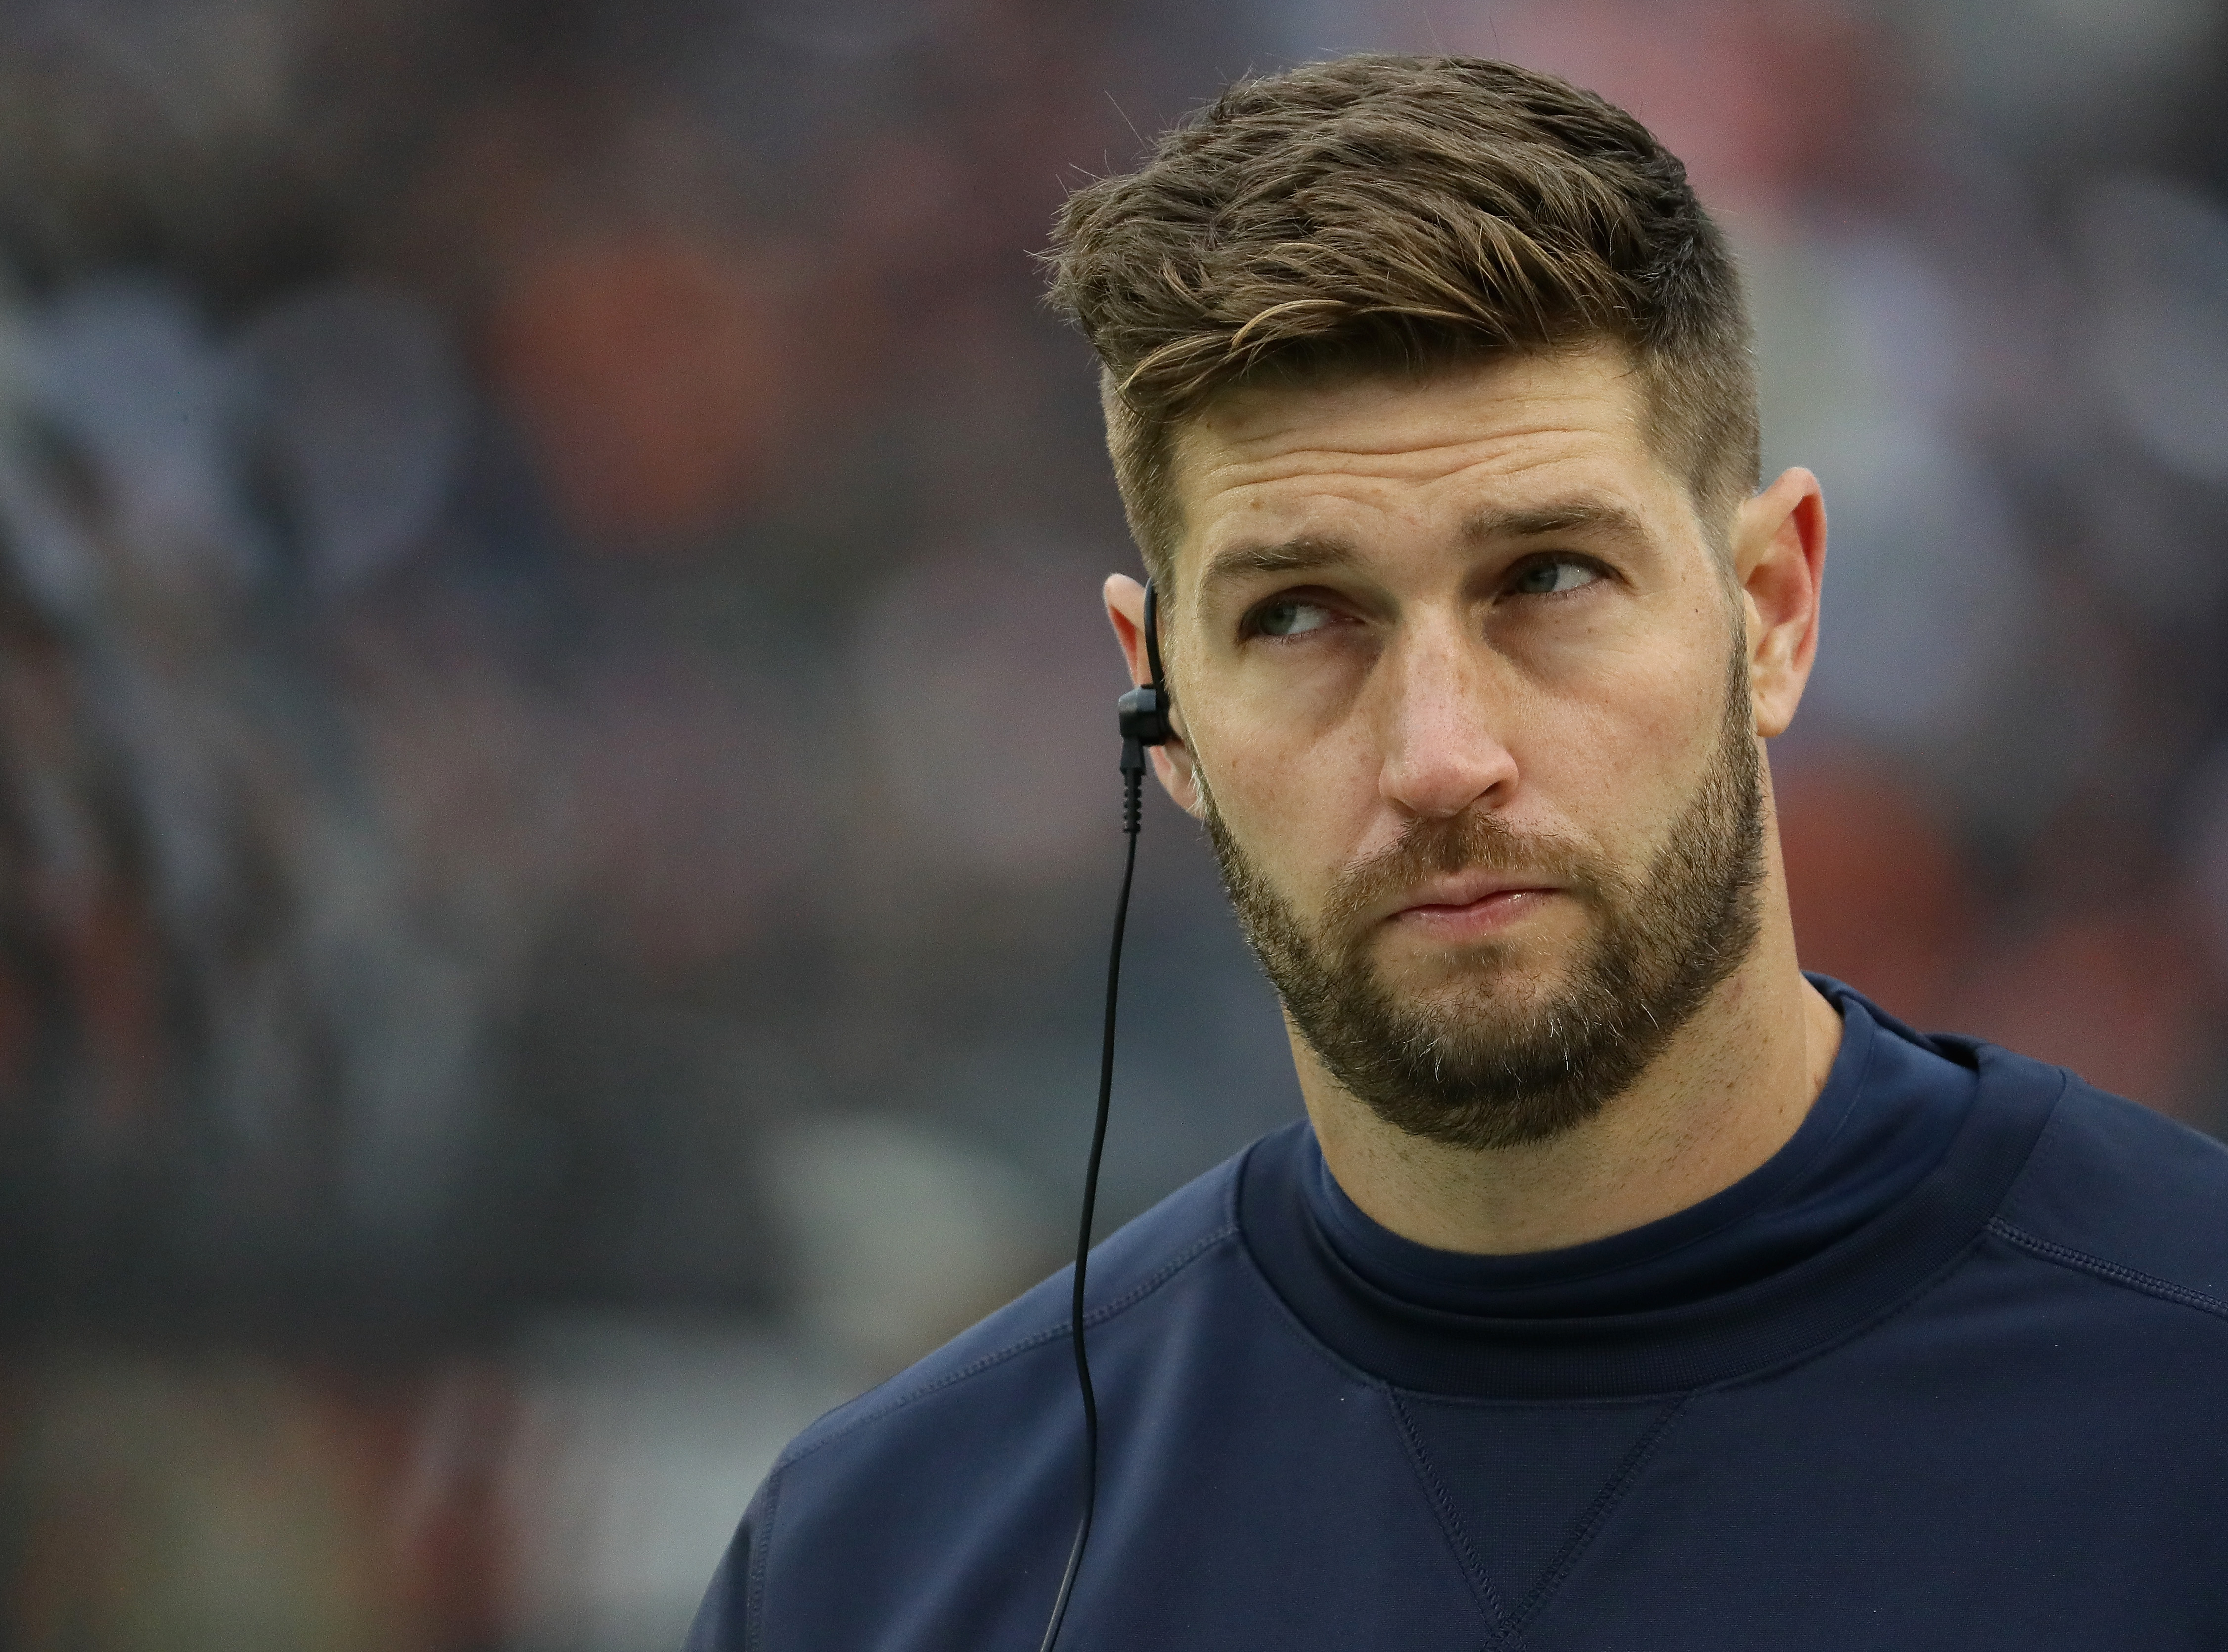 Should the Miami Dolphins turn to Jay Cutler as their future quarterback?